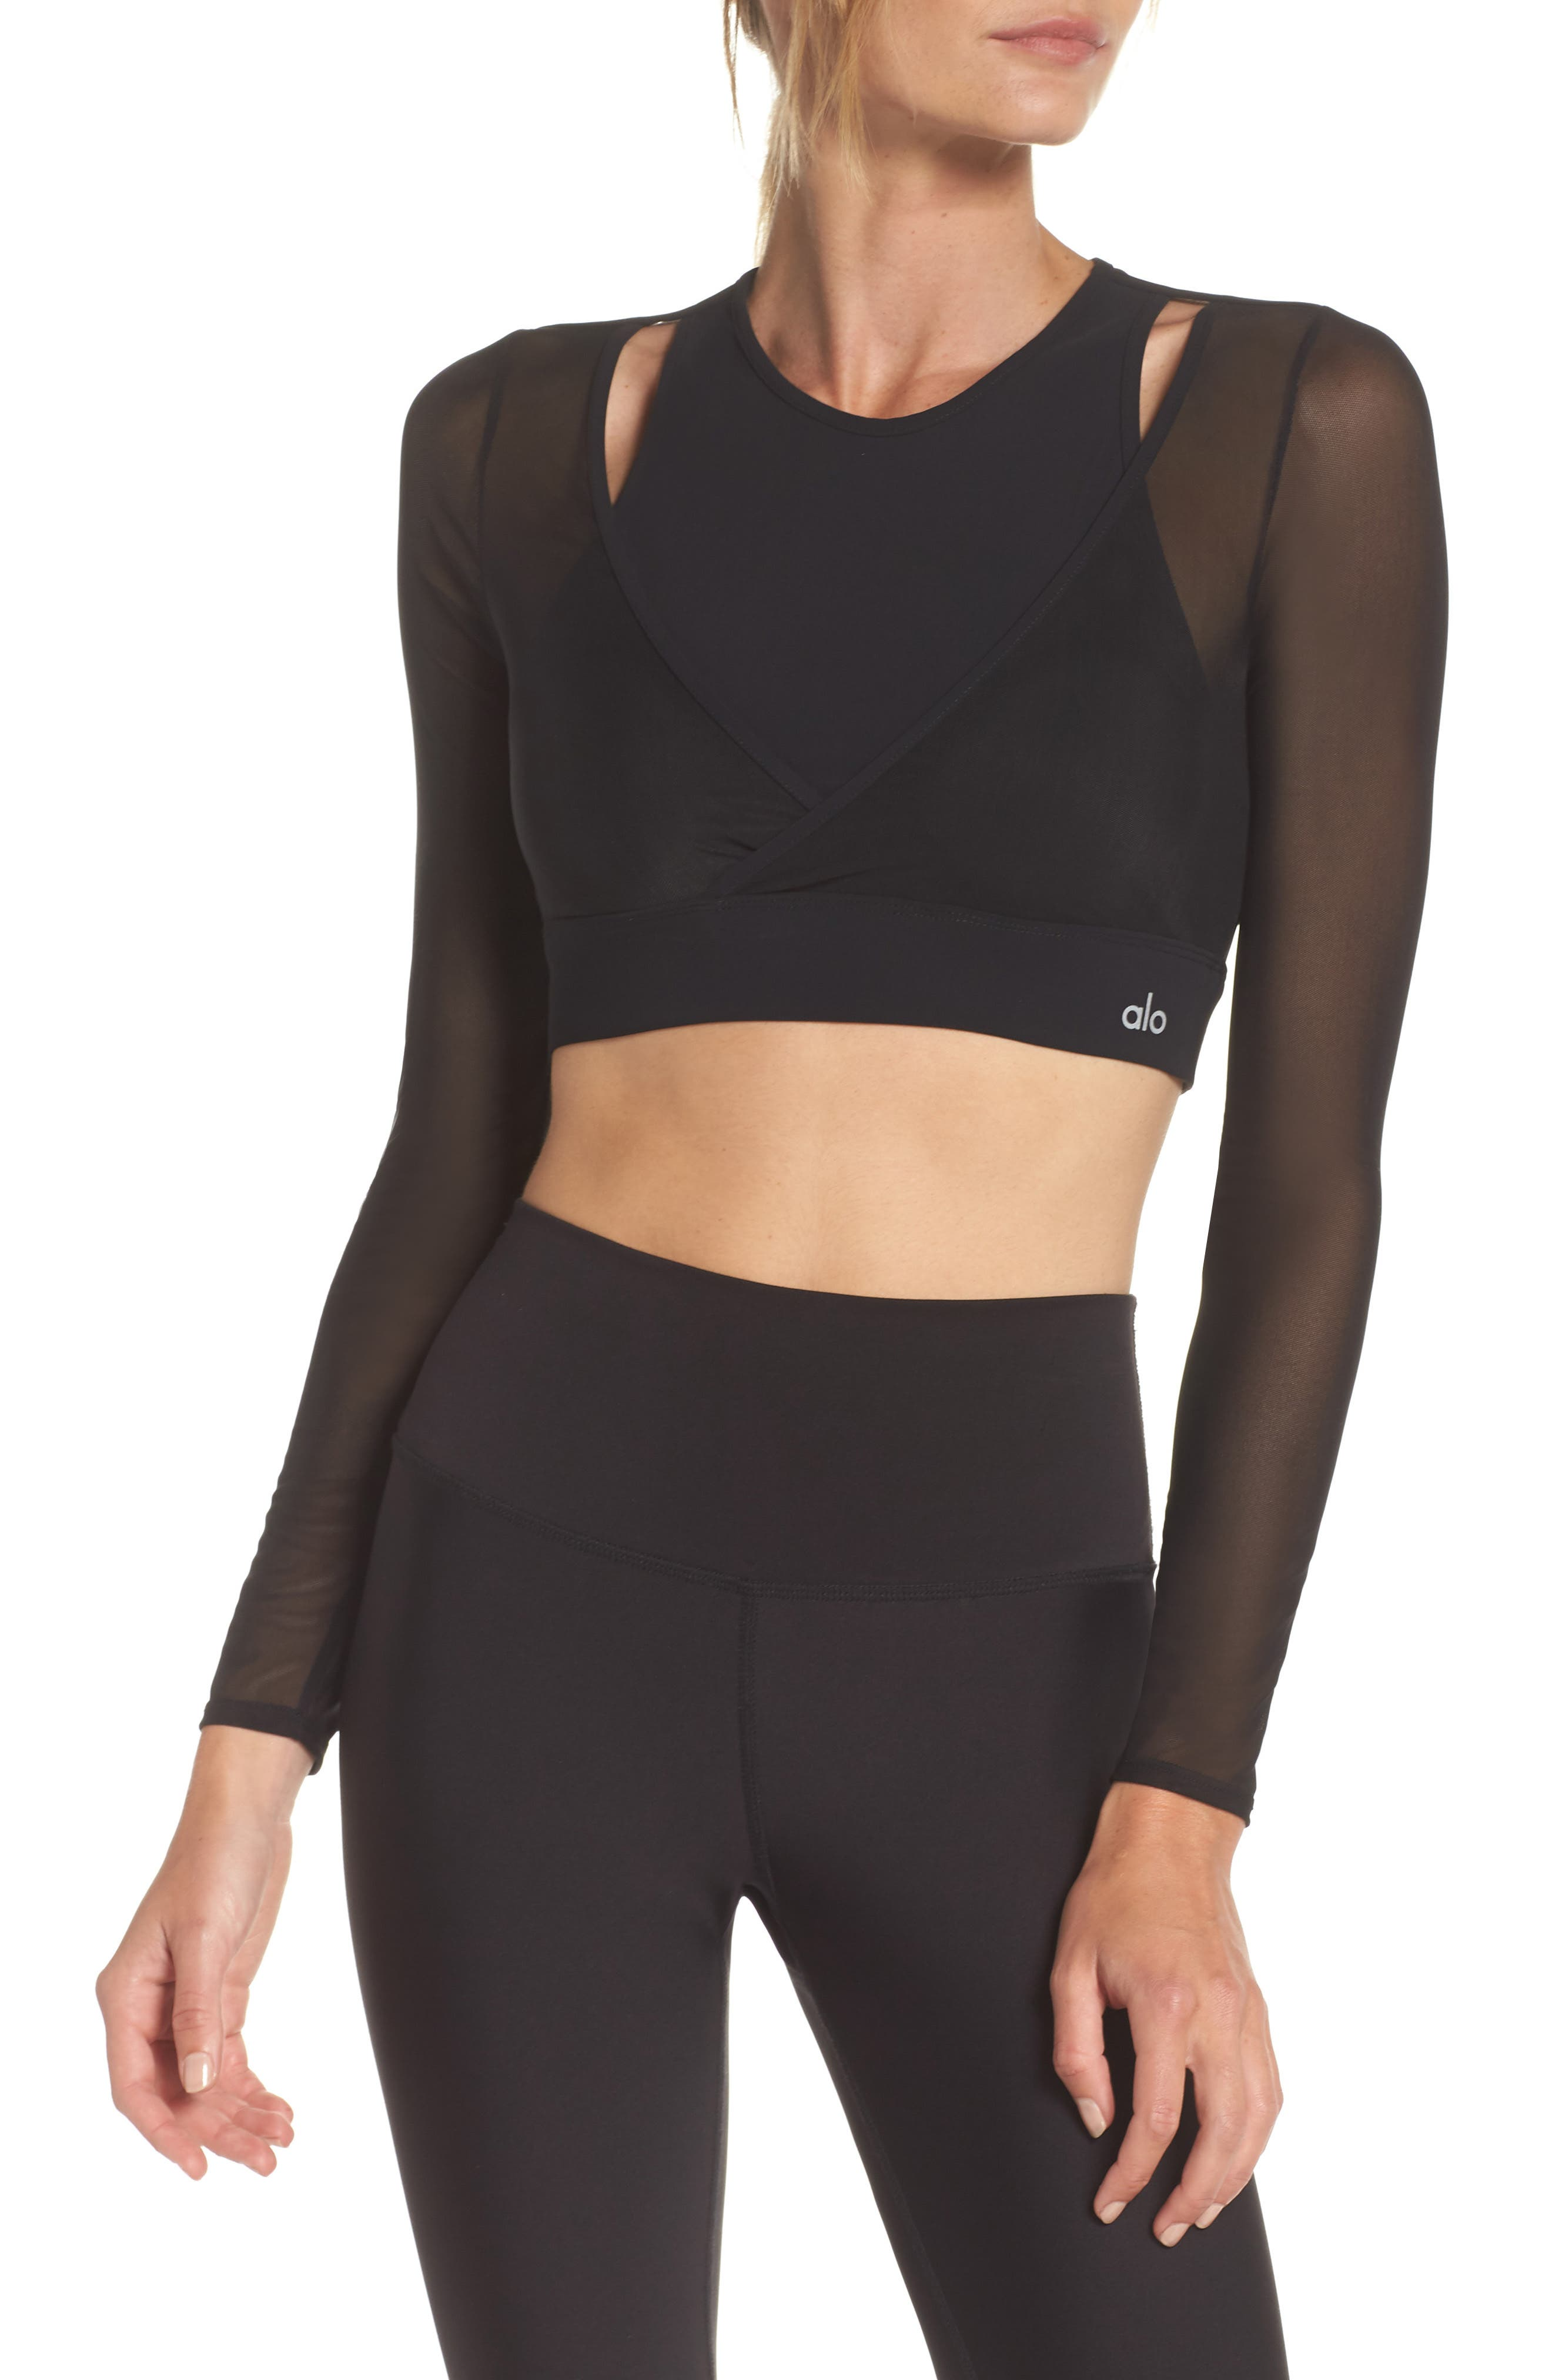 Pivot Layered Look Crop Top,                             Main thumbnail 1, color,                             BLACK